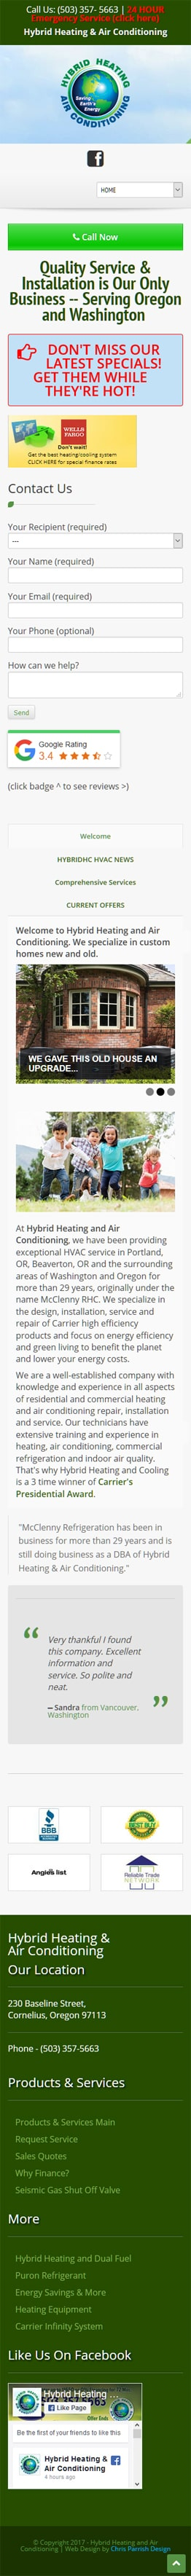 Hybrid Heating and Air Conditioning Mobile View